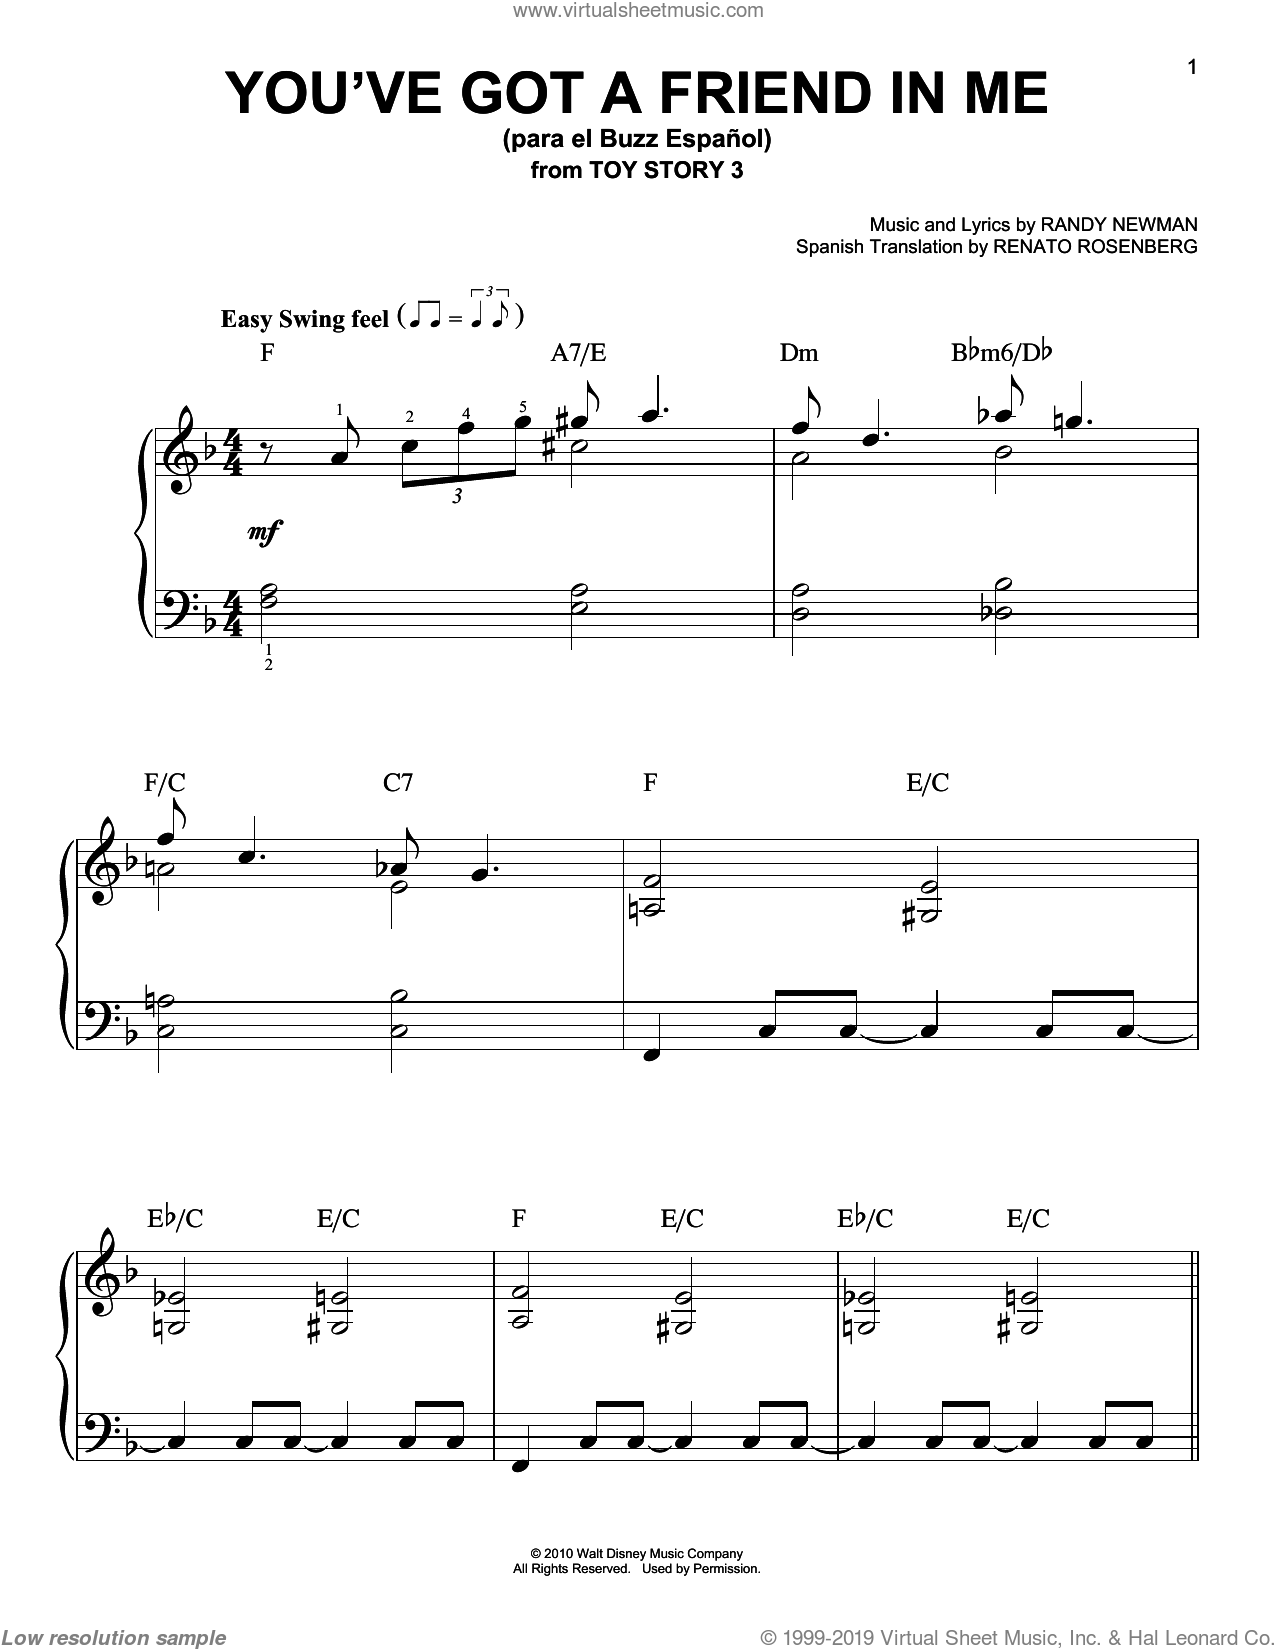 You've Got A Friend In Me (para el Buzz Espanol) sheet music for piano solo by Randy Newman, The Gipsy Kings, Toy Story 3 (Movie) and Renato Rosenberg, easy skill level